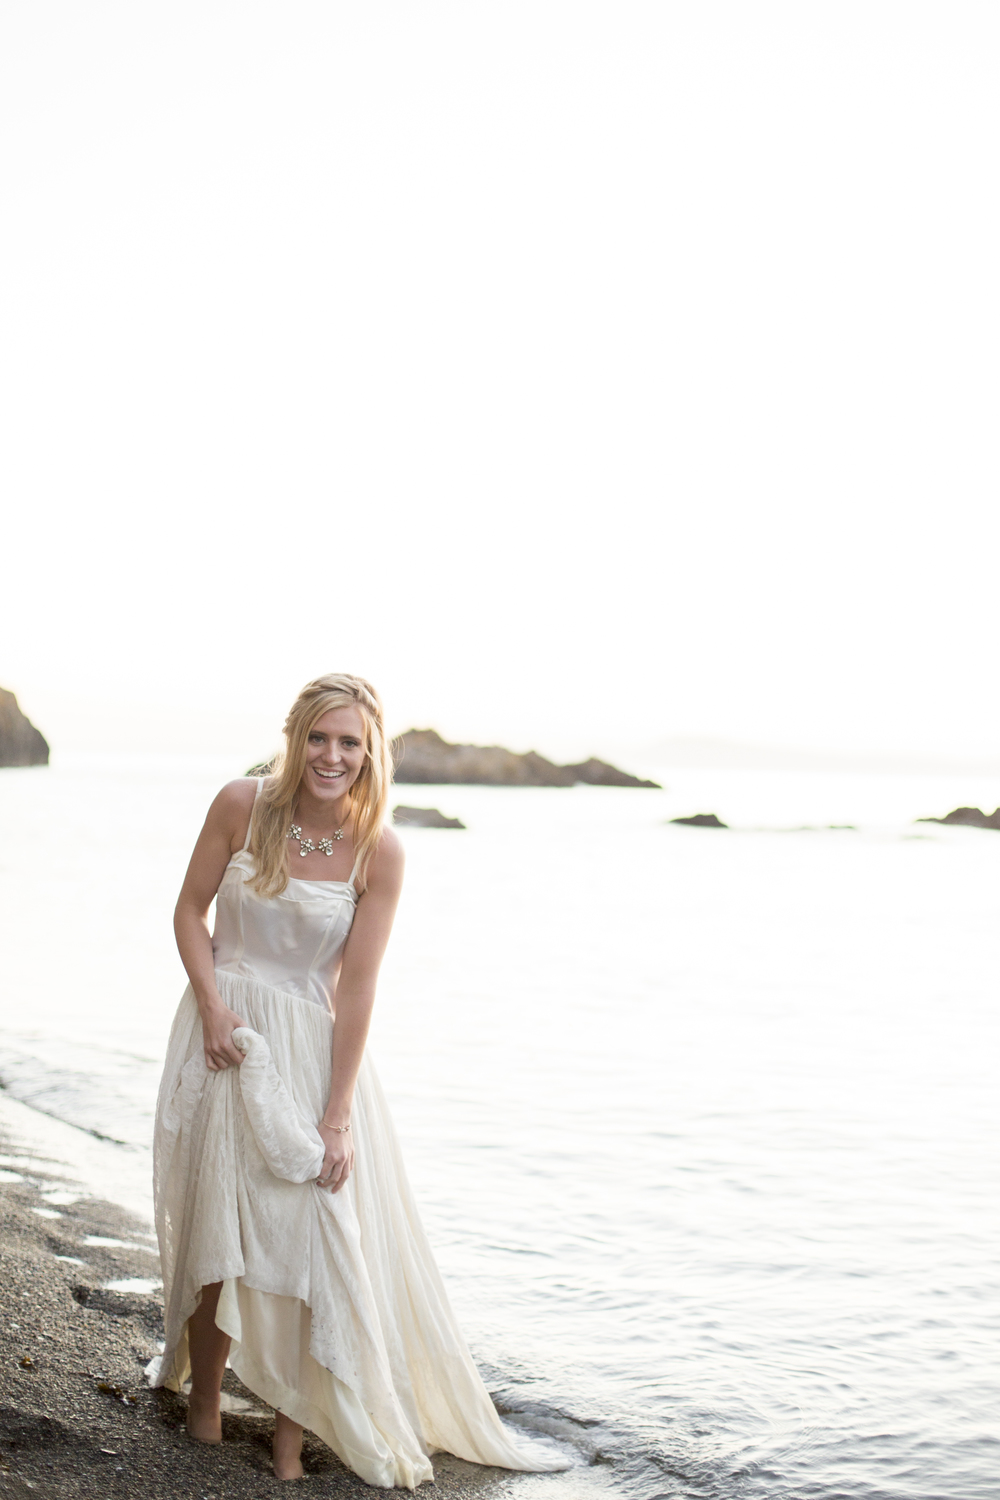 BrookeTaylorStudios_weddingphotographerkayla138.jpg